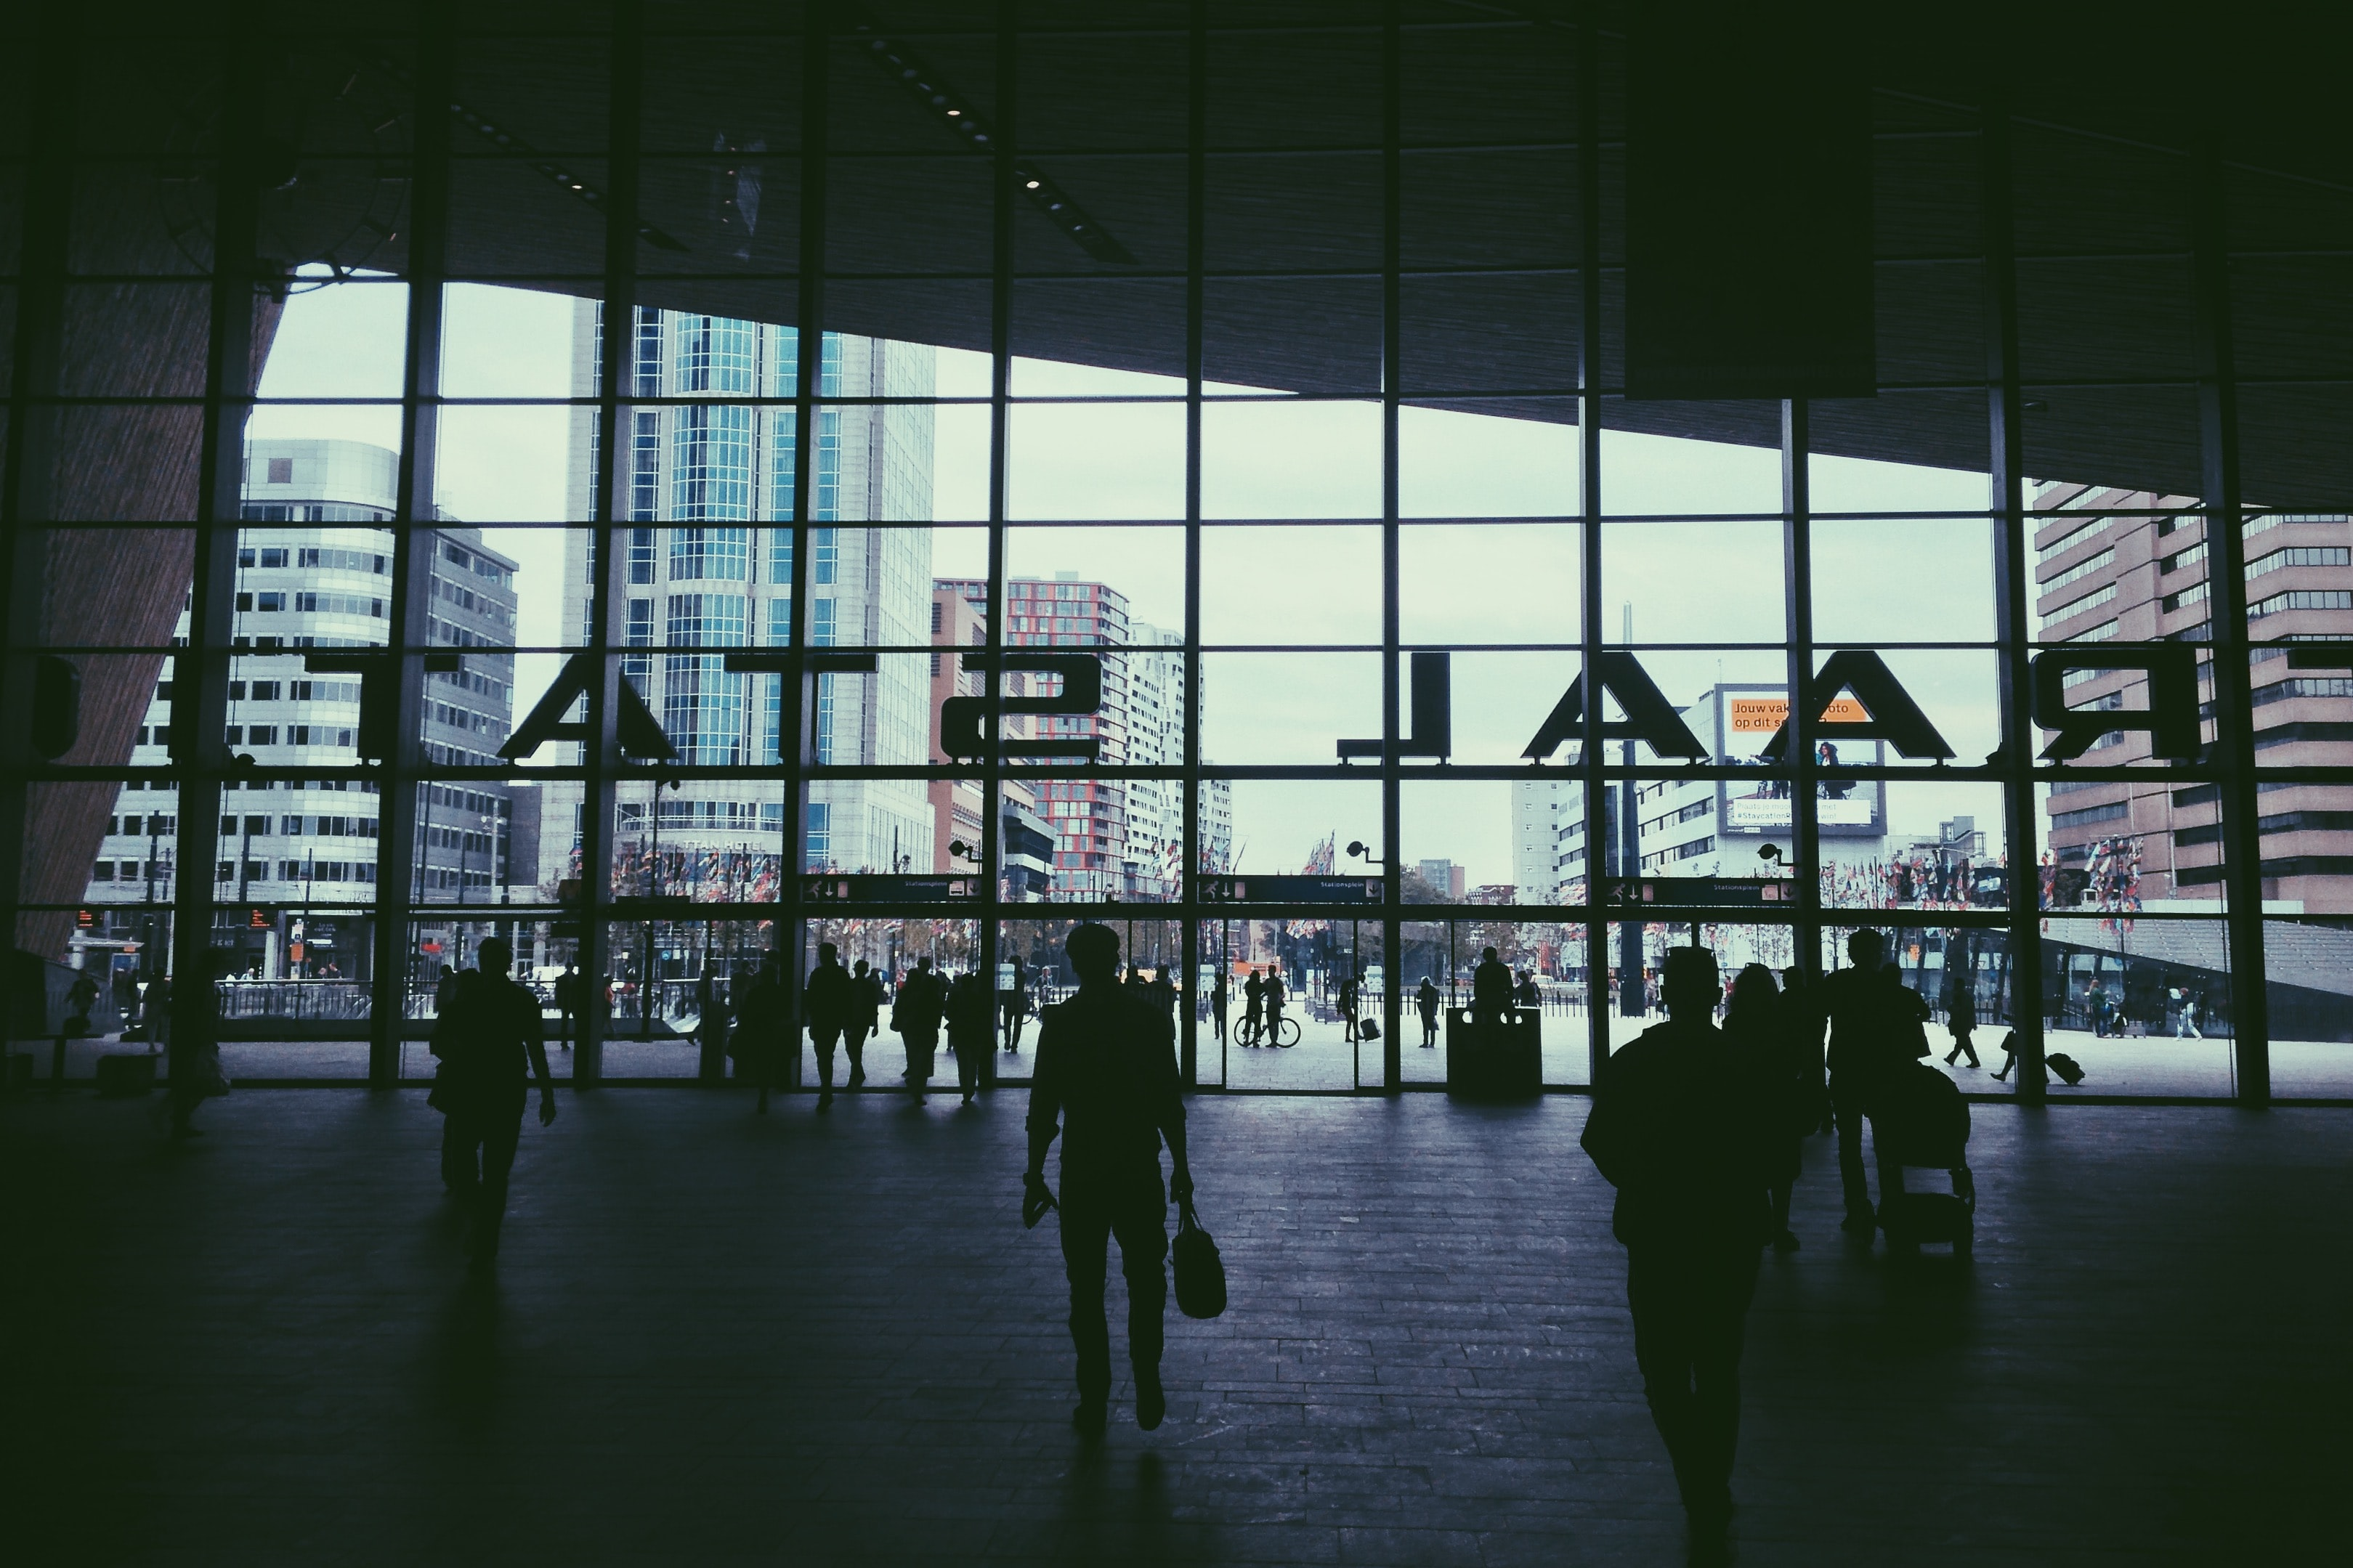 Passengers are at the entrance of the Rotterdam Centraal Station with the Rotterdam cityscape in view.